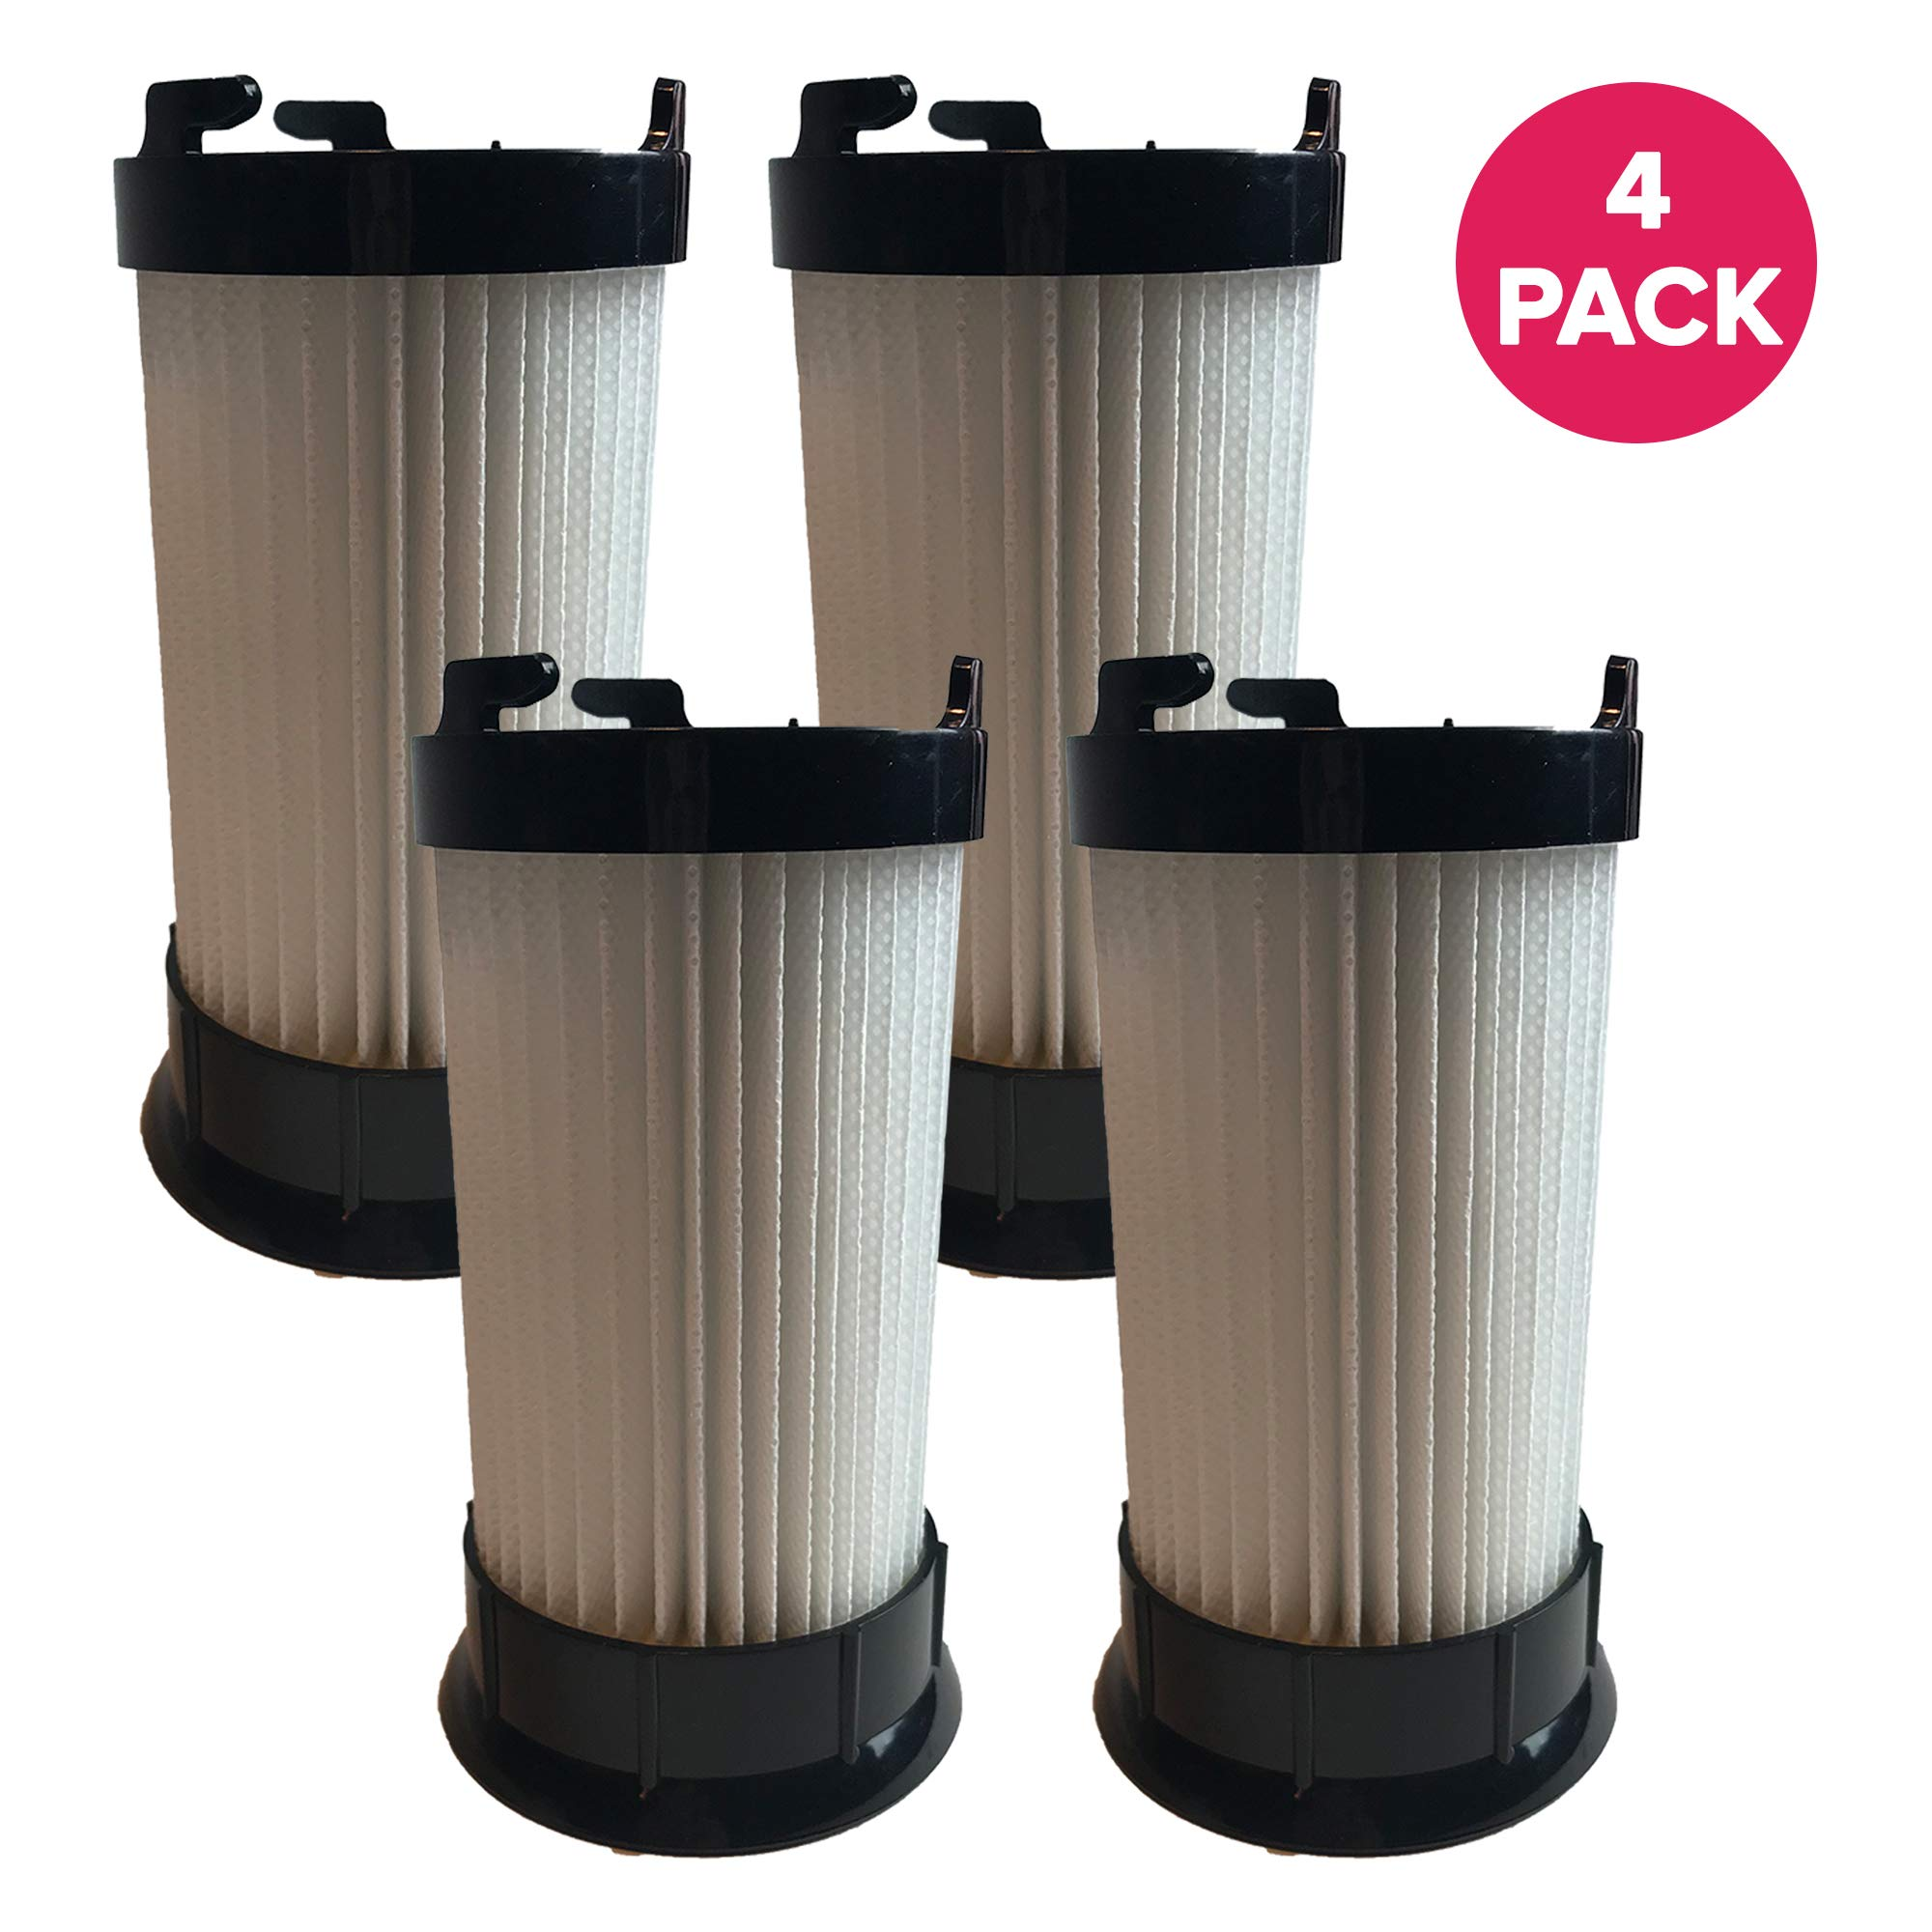 Crucial Vacuum Air Filter Replacement - Compatible with Eureka Part # DCF-4, DCF4, DCF-18, DCF18 - Models 4704BLM, 4702A, 4704BLU, 4704FRD, 4704LMP, 4704LTA 4704ONG, 4704PNK, 4704PUR, 4710AV (4 Pack)